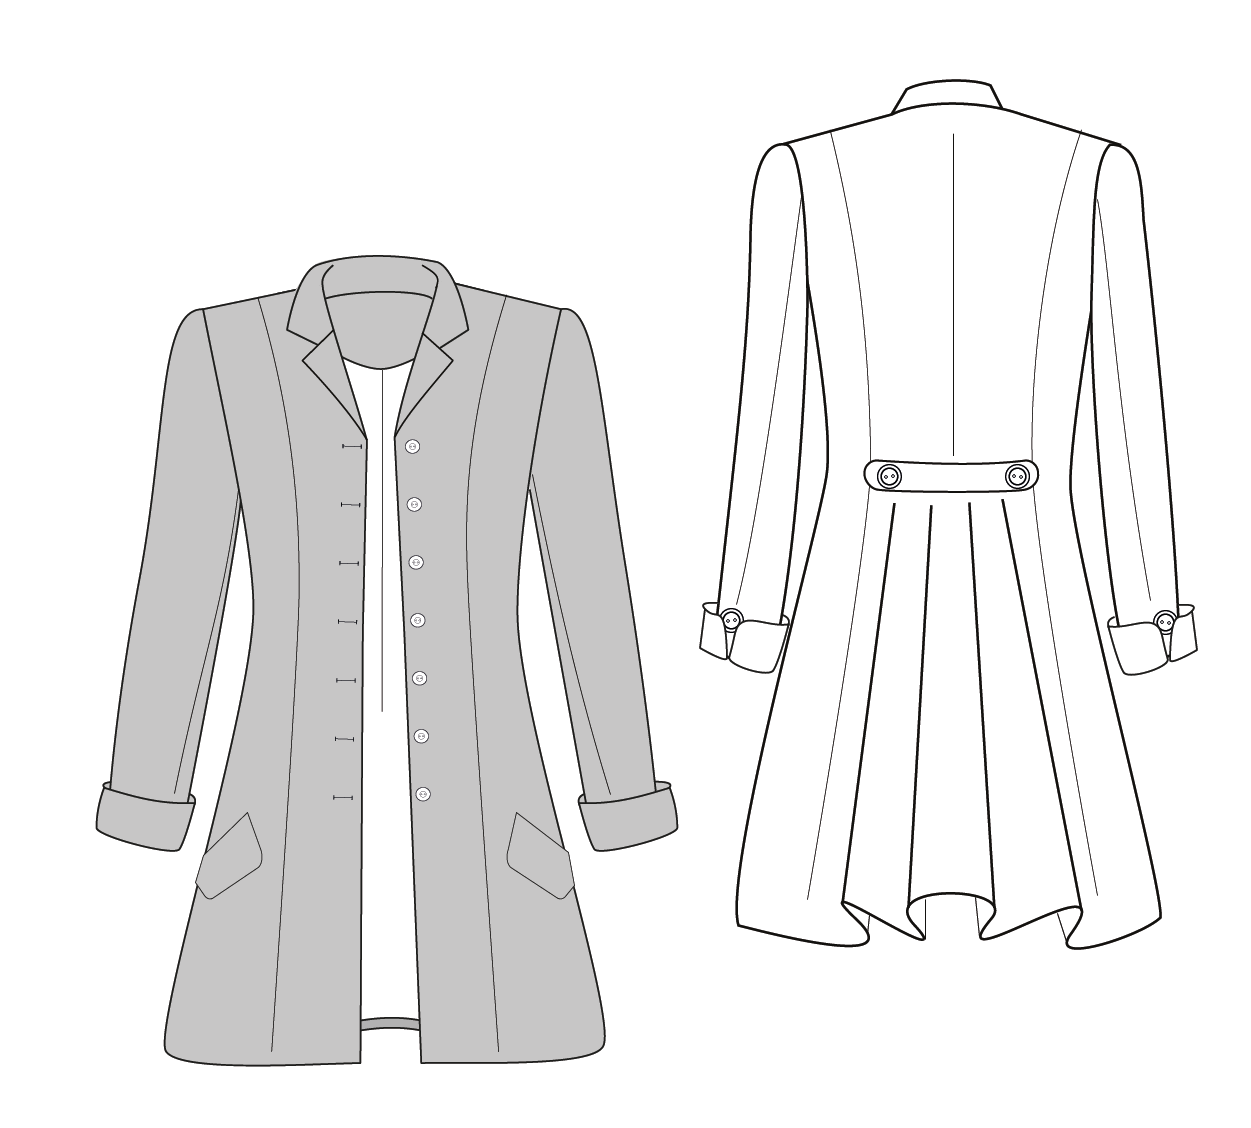 Drawing of the Frock Coat Sewing Pattern designed by Angela Kane